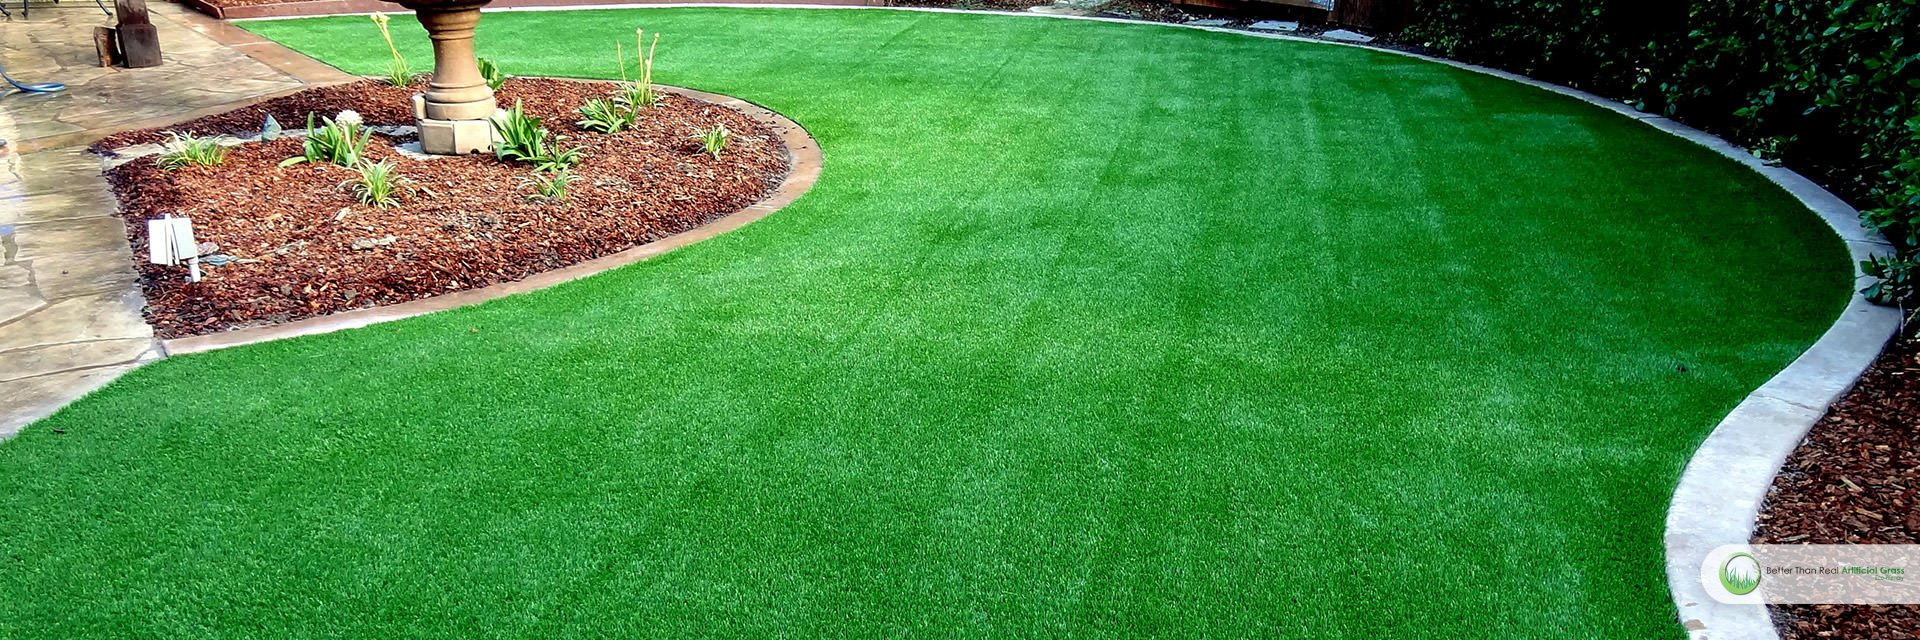 artificial turf yard.  Yard Welcome To Better Than Real Artificial Grass For Turf Yard C